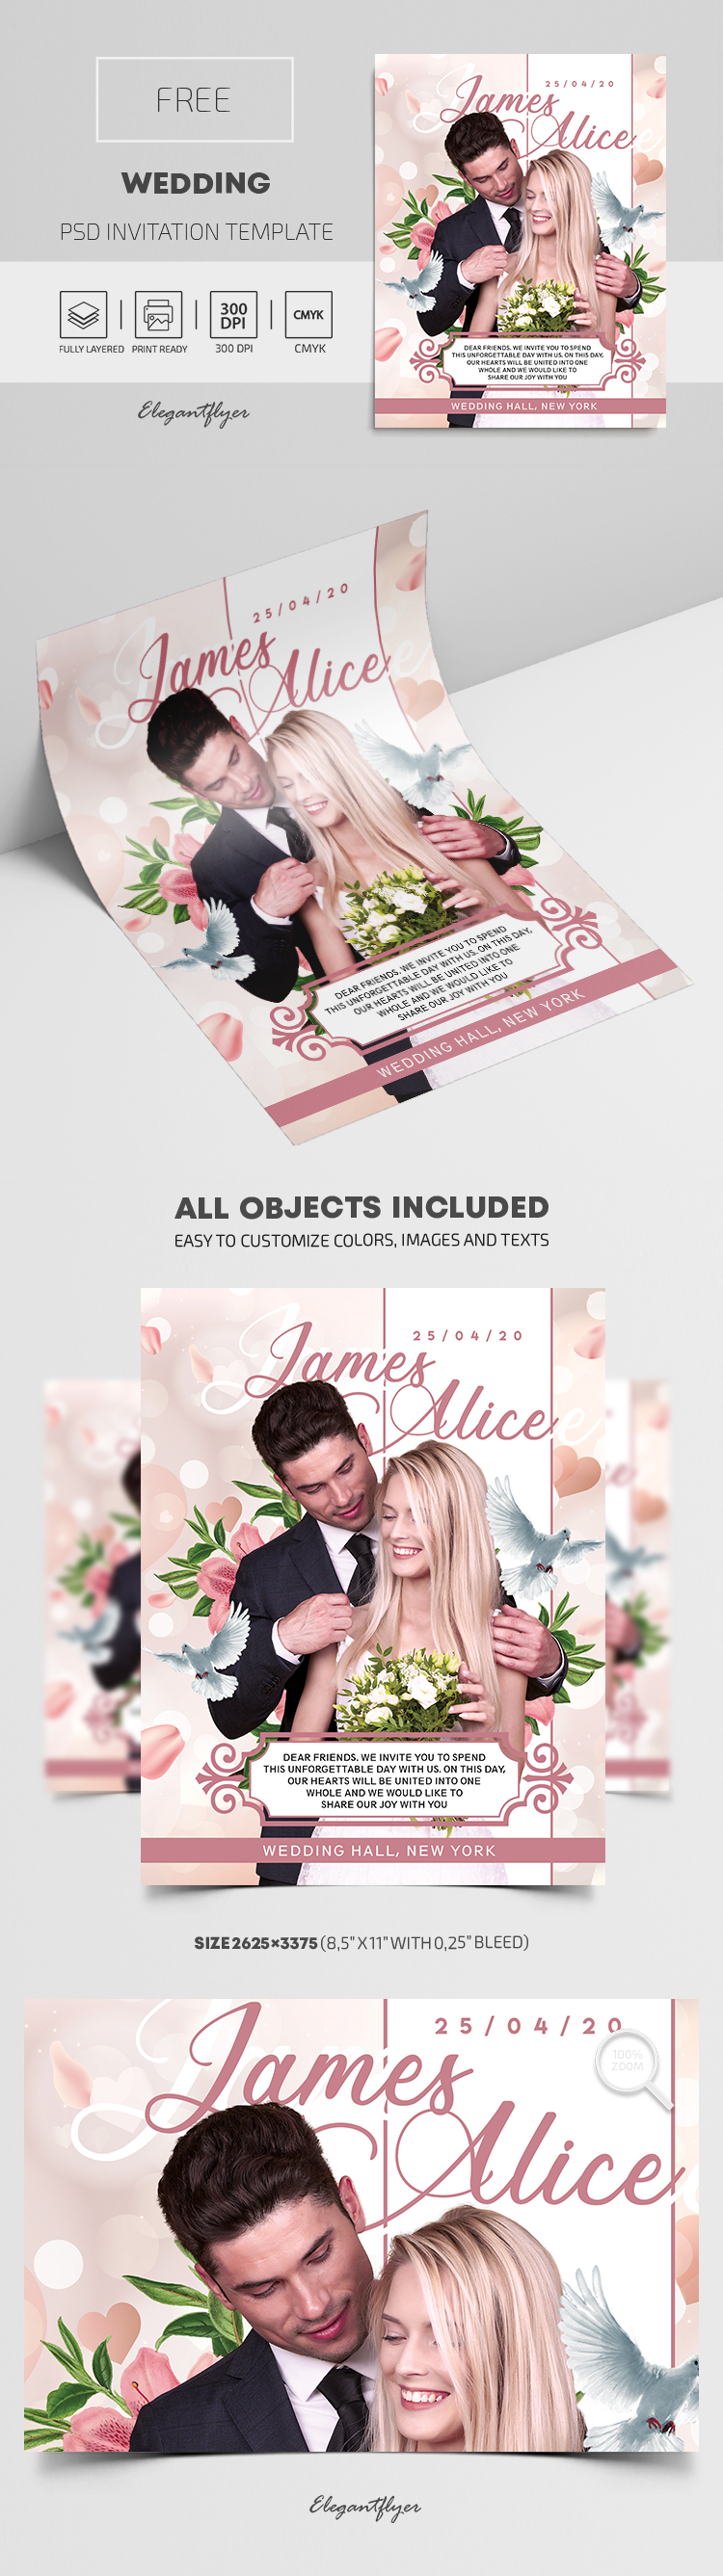 Wedding – Free PSD Invitation Template